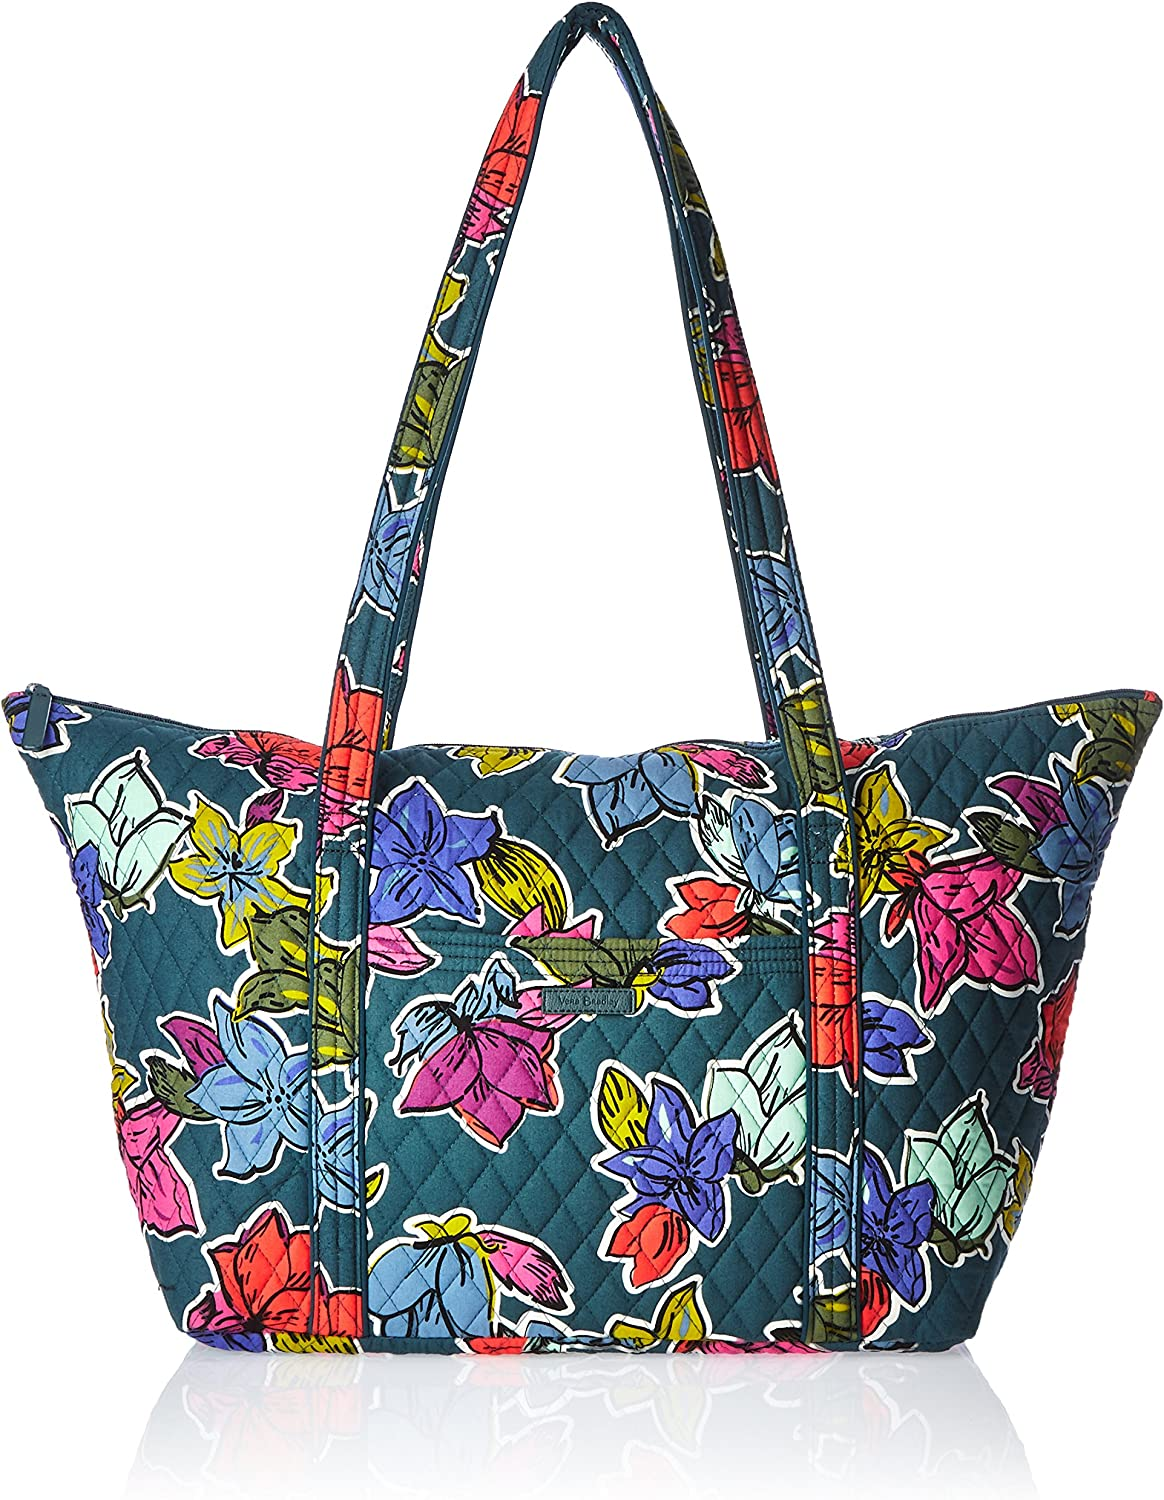 Tropical flowers tote bag carry on Floral travel bag Large weekender Tropical Flowers Collection Bright Colors Vacation Bag